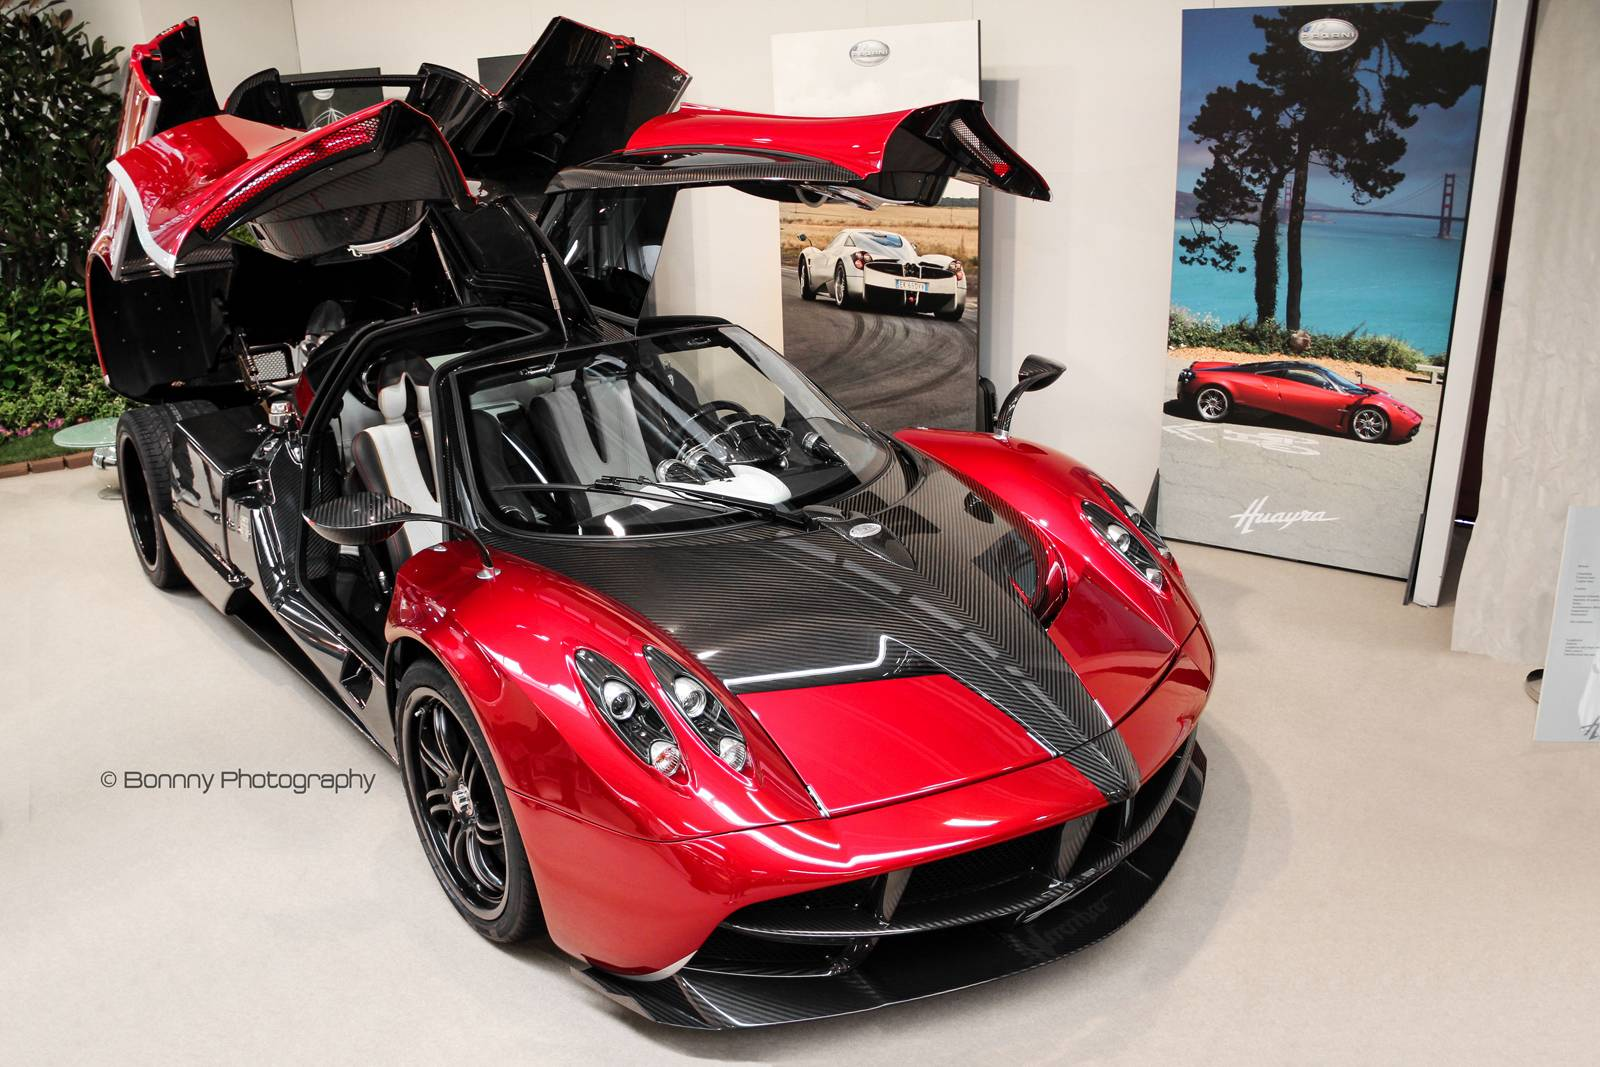 transformers 4 pagani huayra at modena antiquaria gtspirit. Black Bedroom Furniture Sets. Home Design Ideas